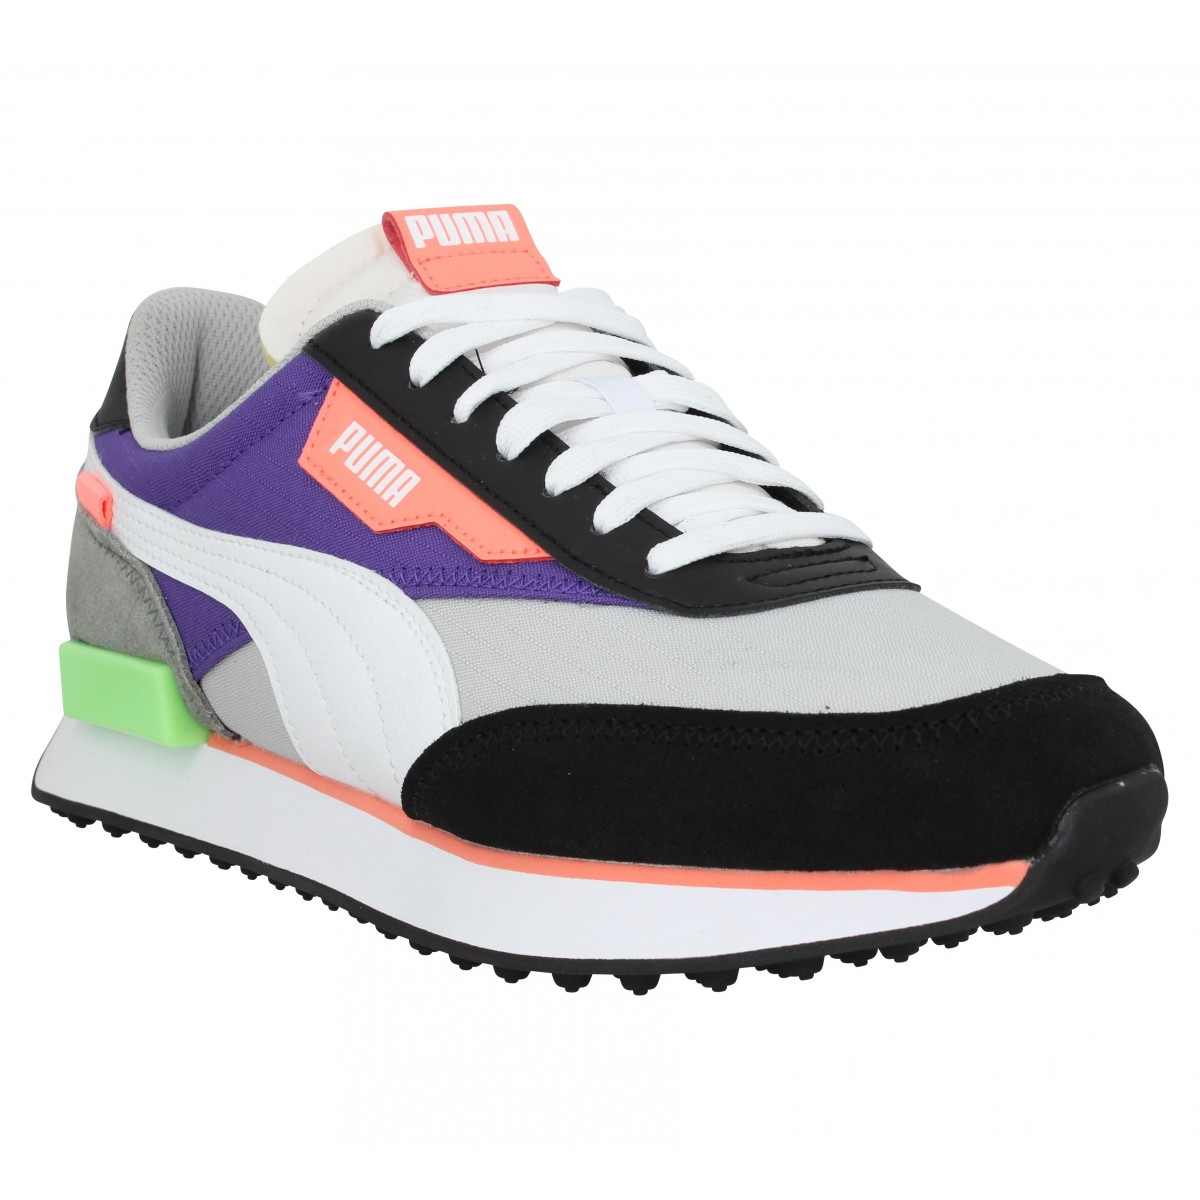 Puma Marque Future Rider Play On Velours...